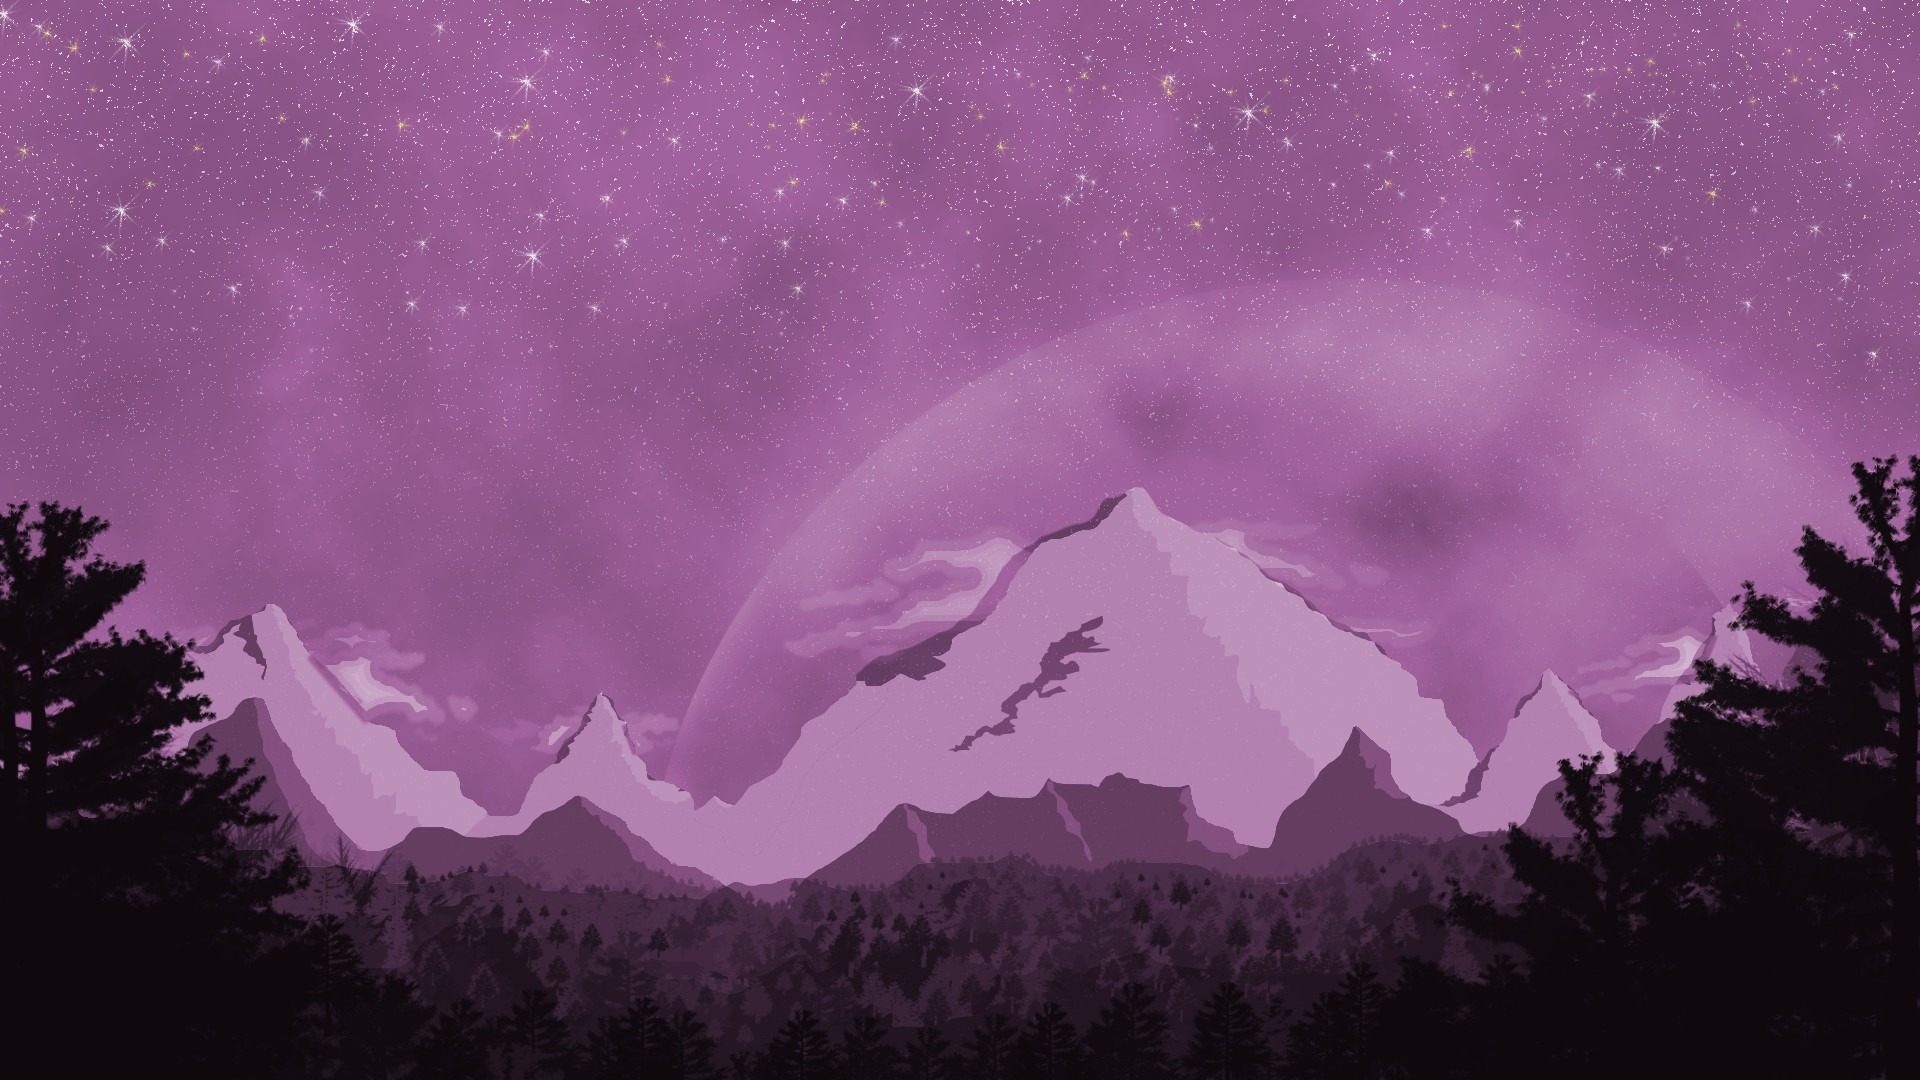 Pink Mountain Abstract HD Wallpaper